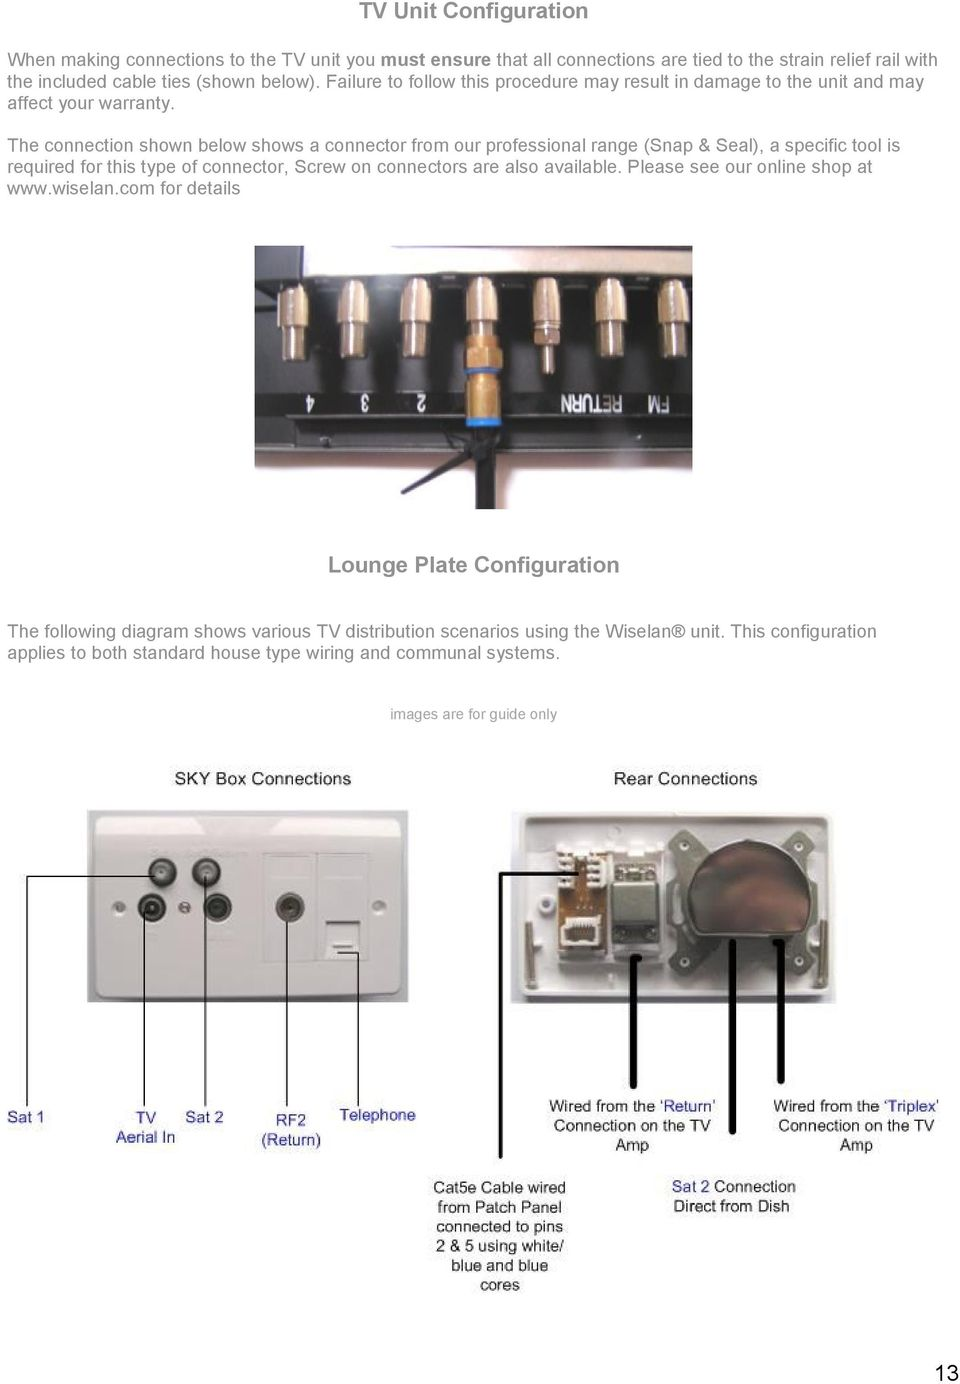 Home Cabling Installation Guide Pdf Wall Mount Ethernet Jack Wiring Diagram Also Neat Patch Cable The Connection Shown Below Shows A Connector From Our Professional Range Snap Seal